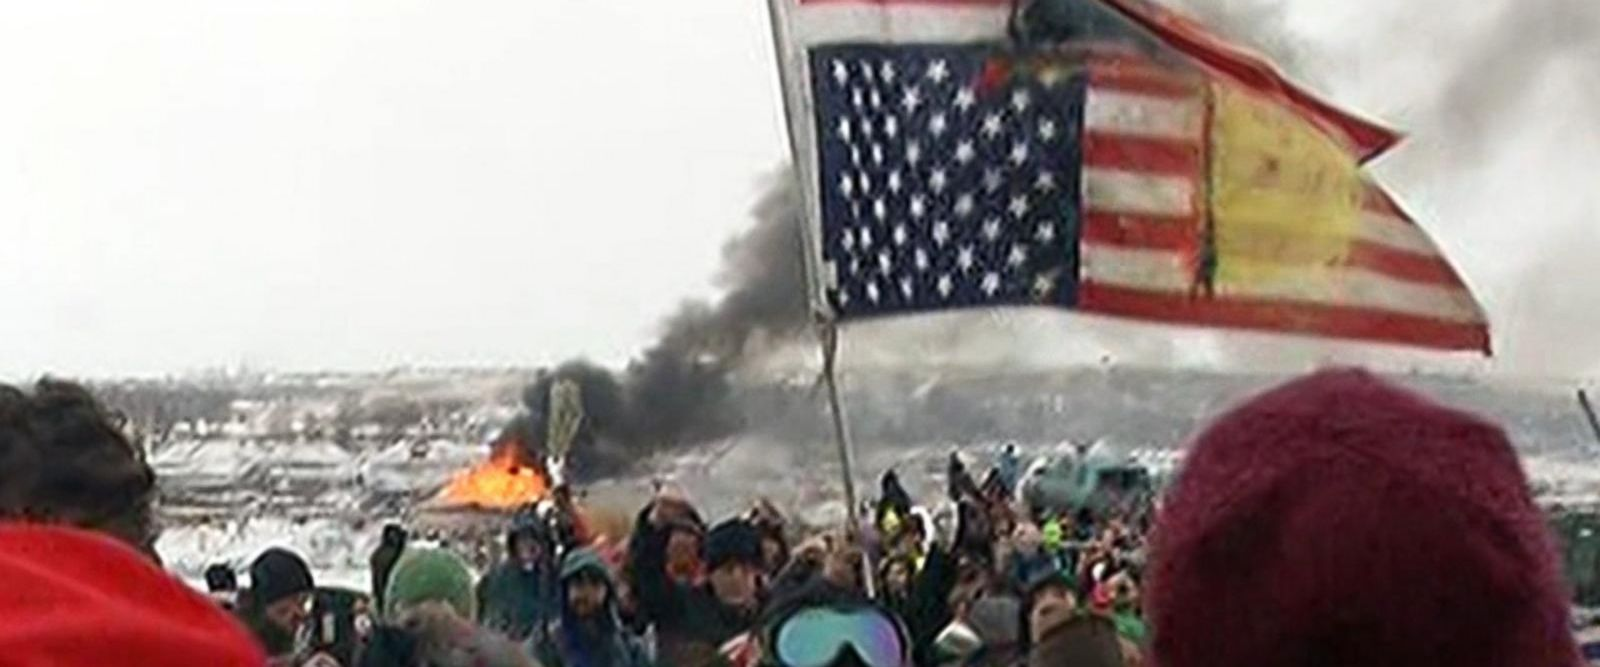 VIDEO: Dakota Access Pipeline protest camps ordered to vacate